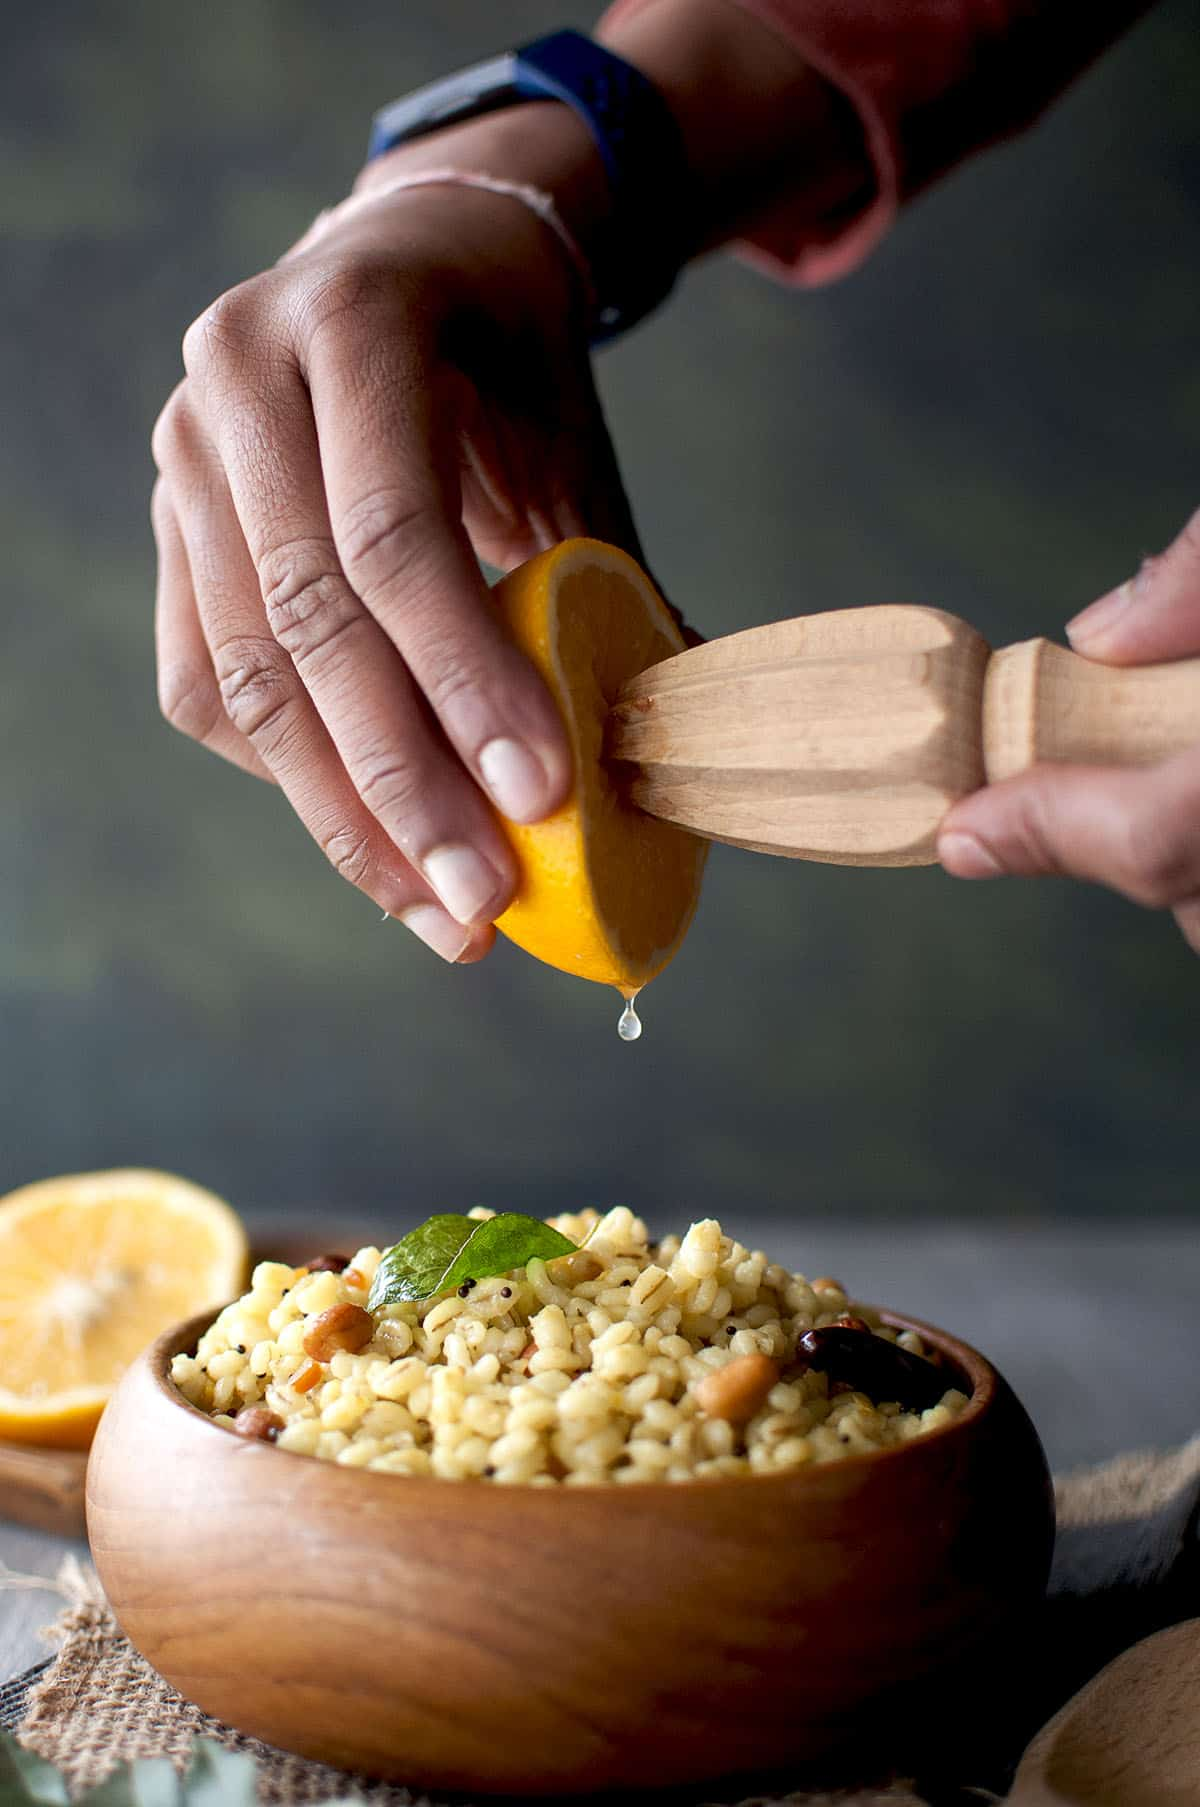 Hand squeezing lemon juice into a wooden bowl